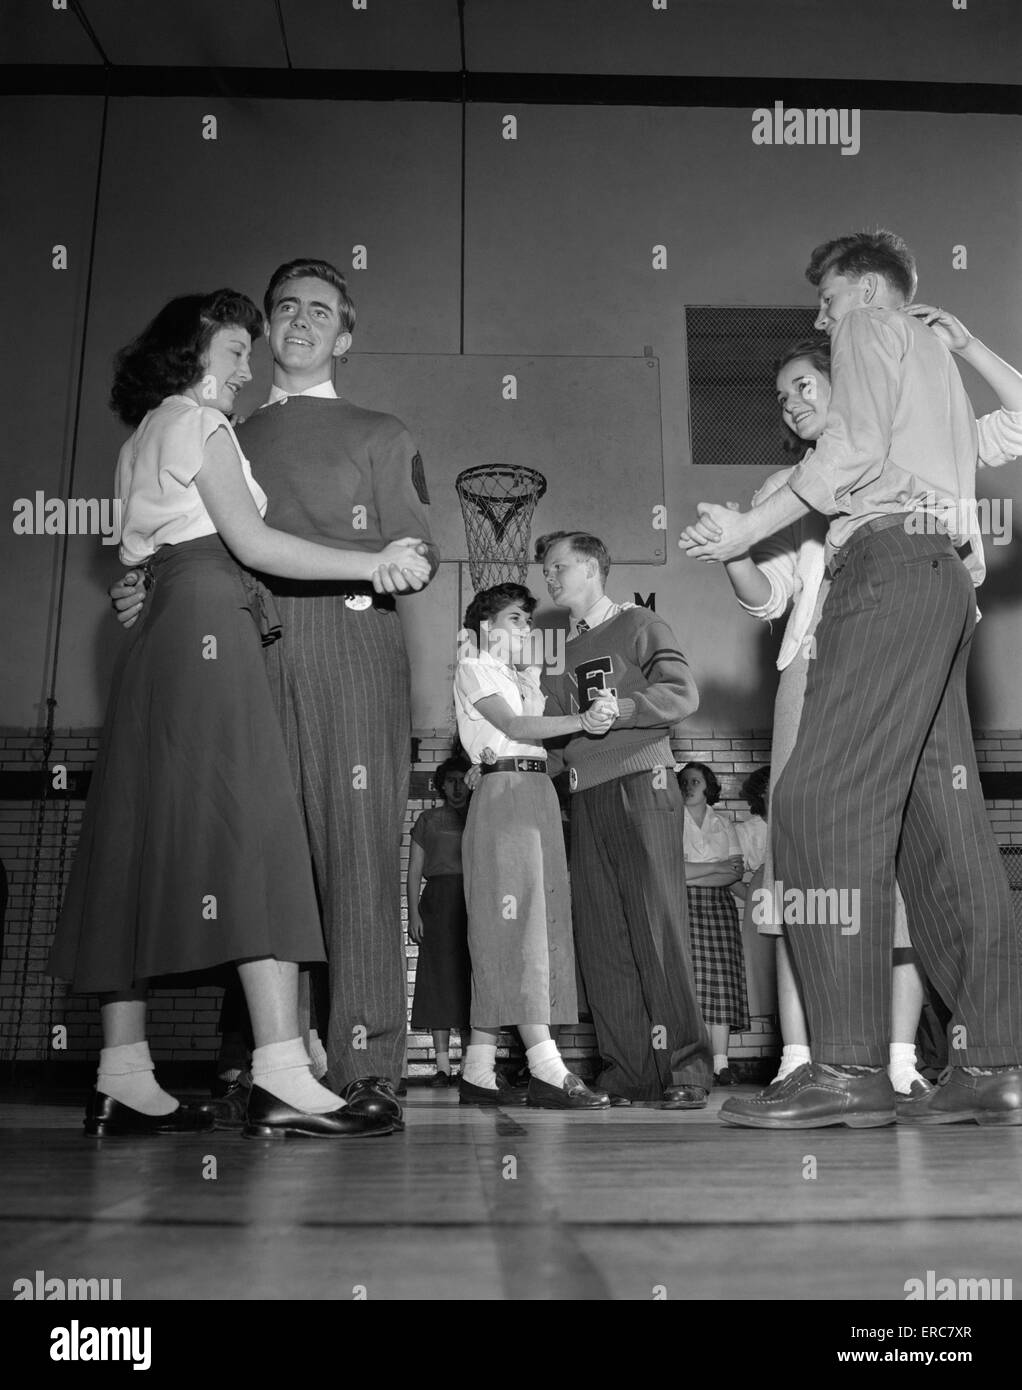 4a49f7e43c04 1940s 1950s TEENAGE BOYS AND GIRLS DANCING SLOW DANCE AT PARTY IN HIGH  SCHOOL GYMNASIUM -